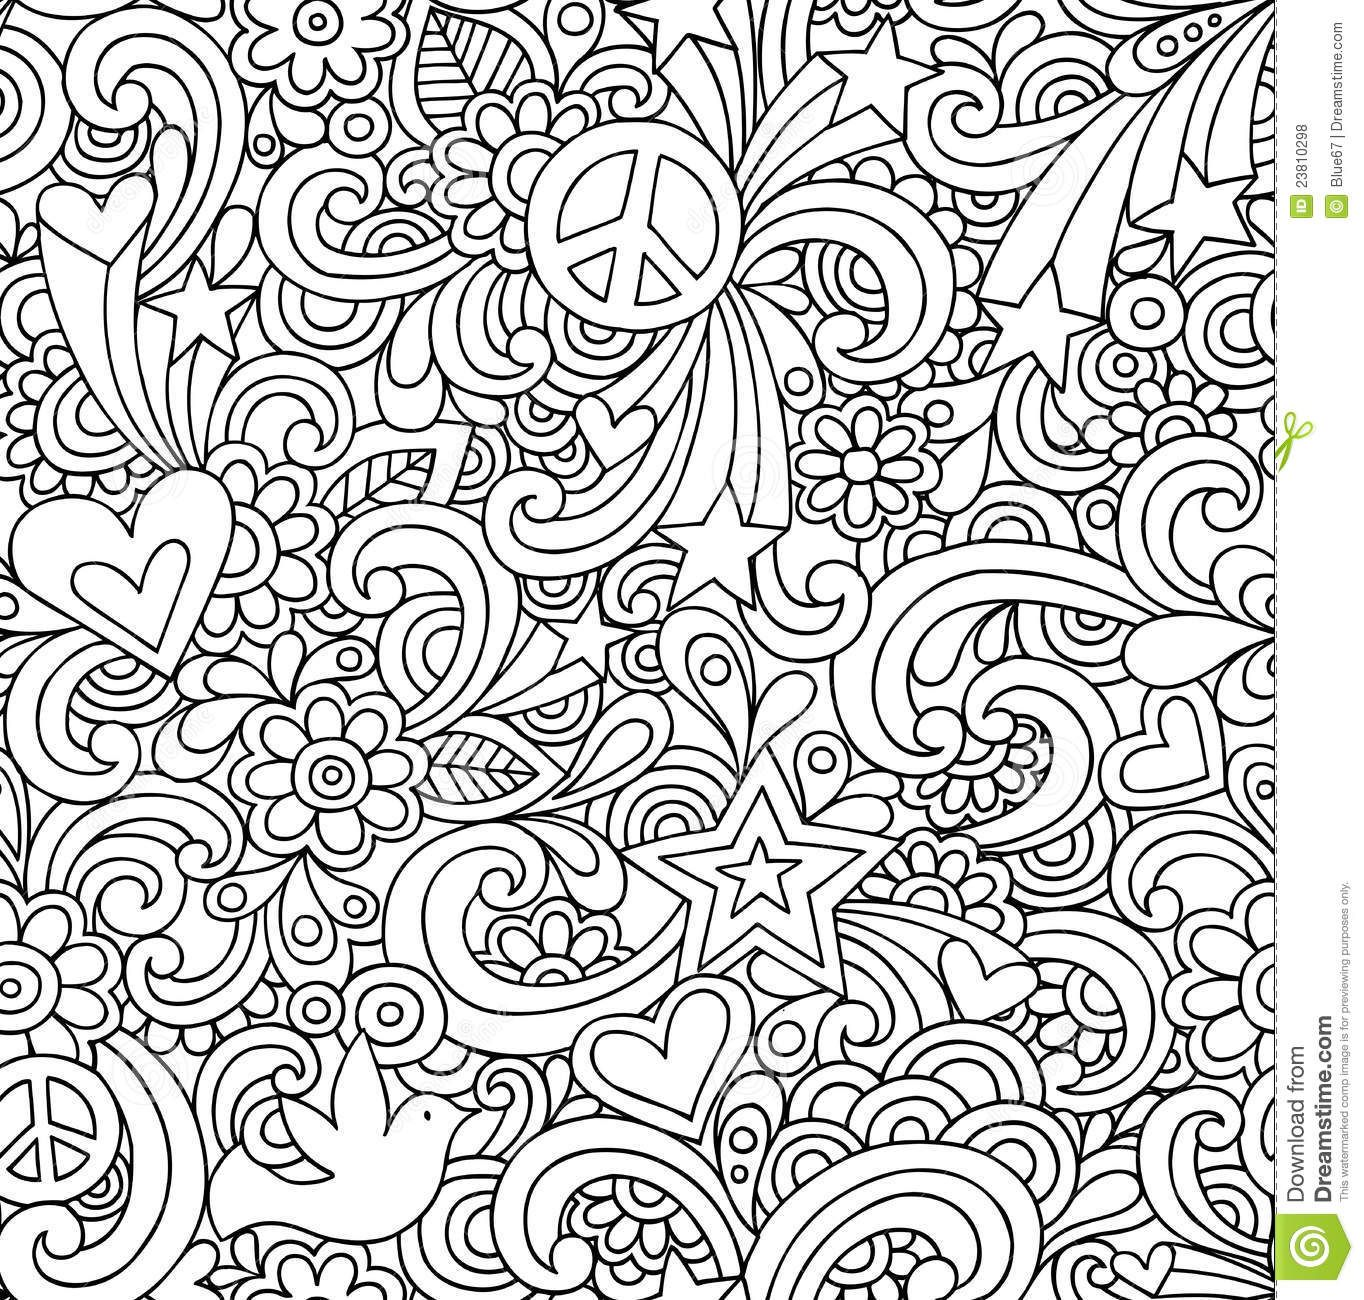 psychedelic peace coloring pages free coloring pages - Psychedelic Coloring Pages For Adults